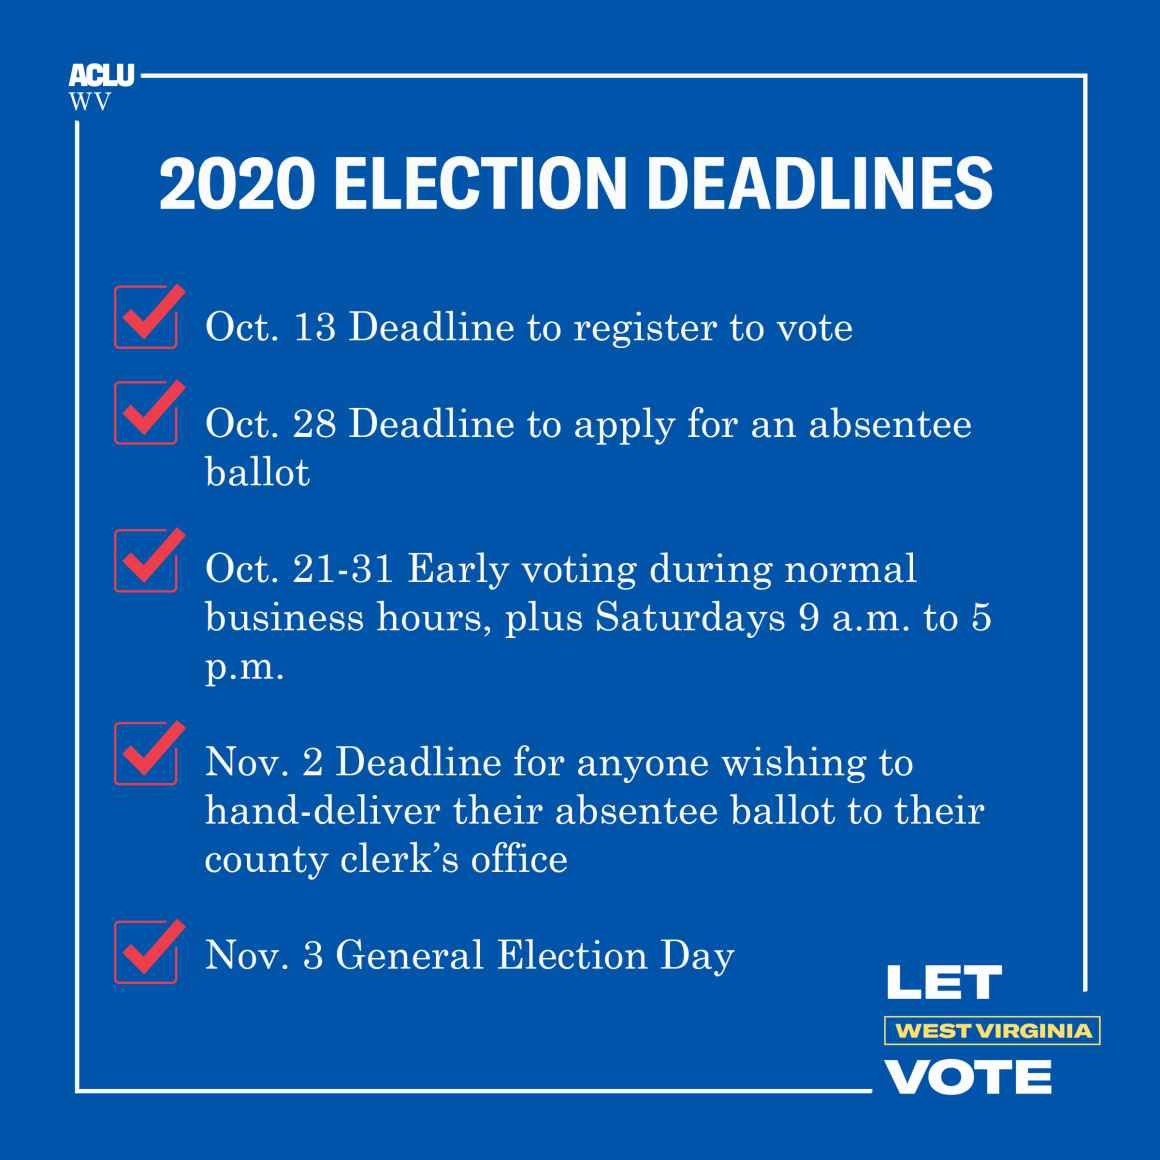 2020 Election Deadlines